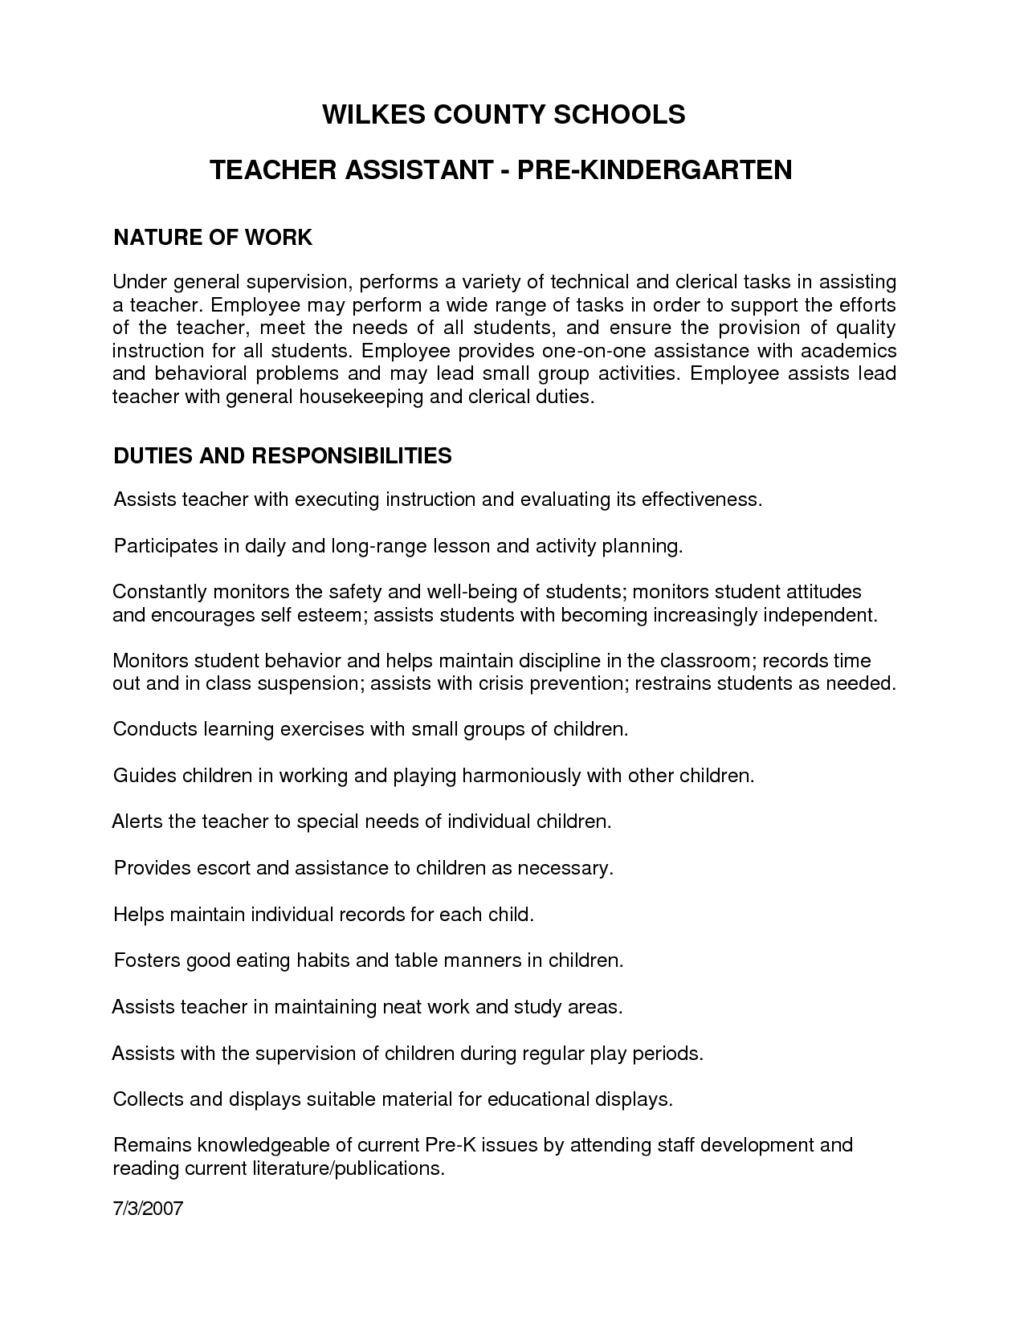 Letter Recommendation For Preschool Teacher Assistant Cover